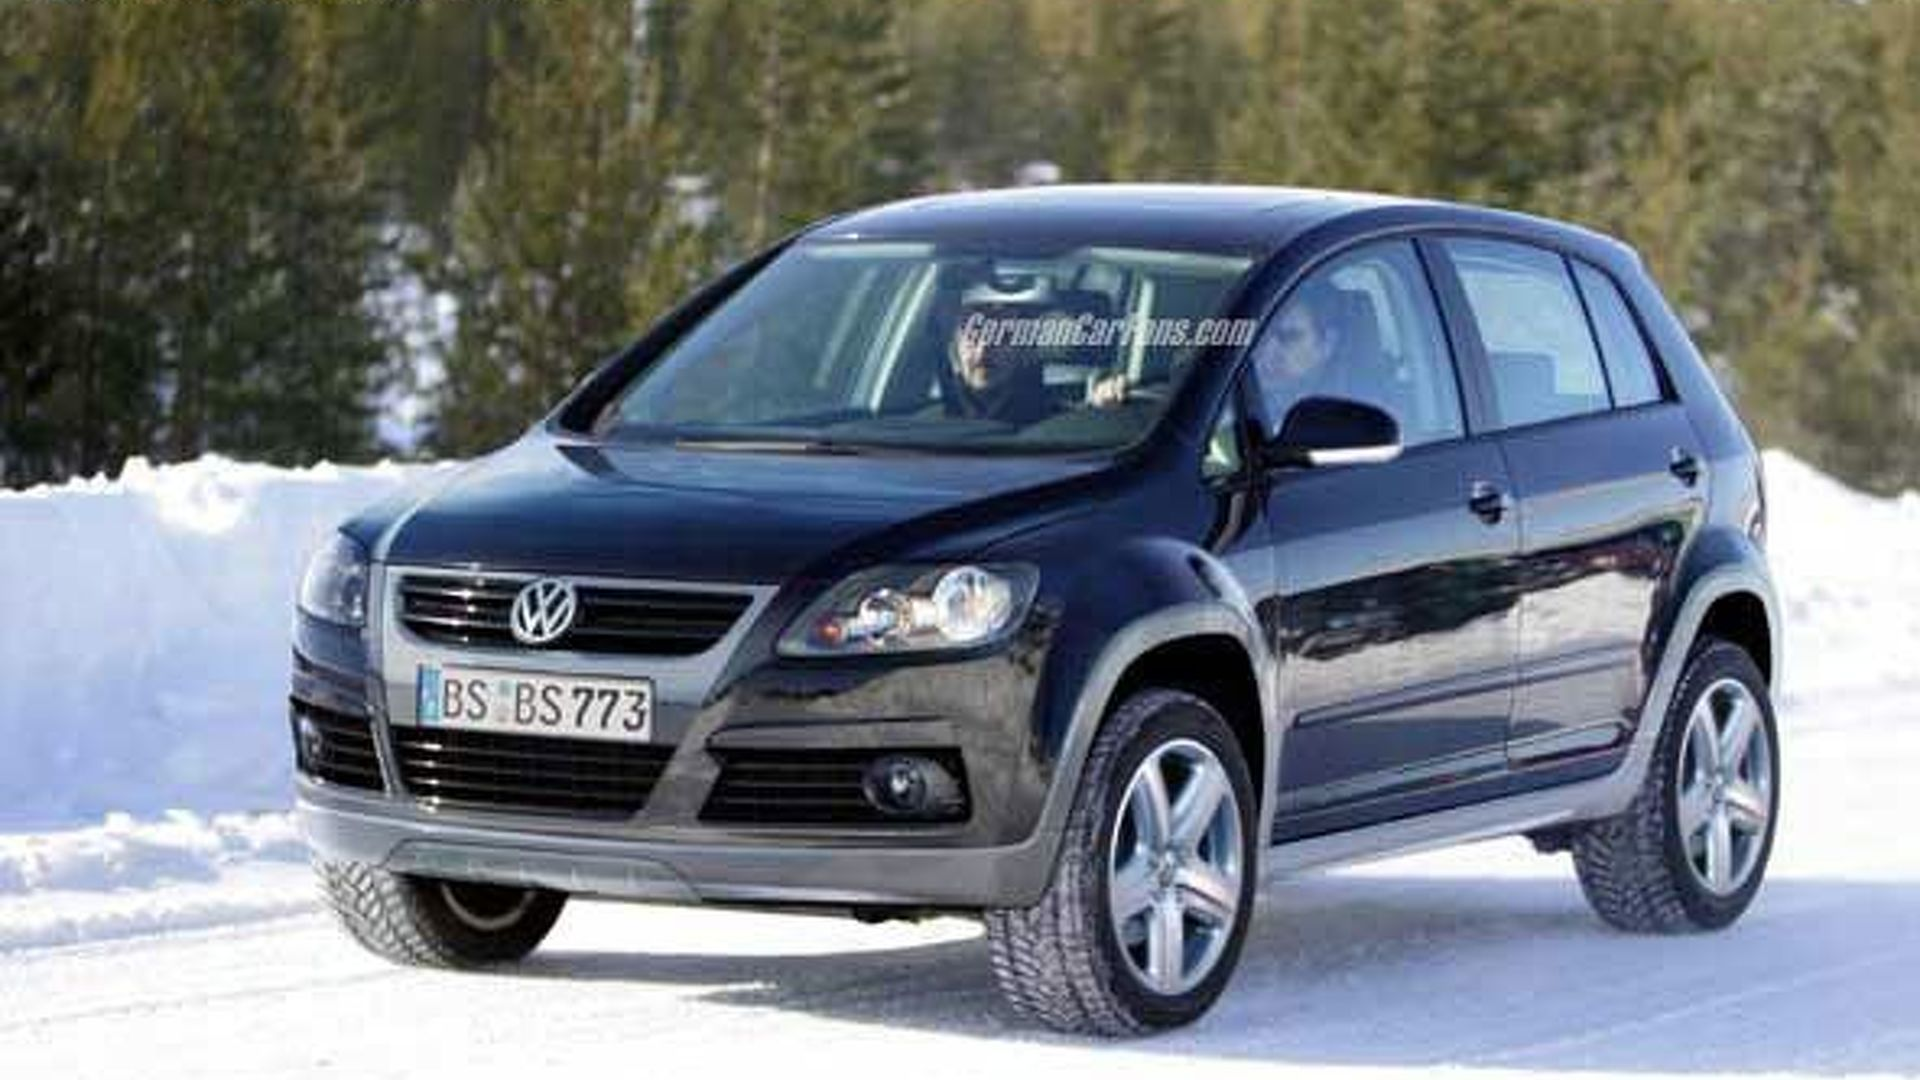 vw cross golf suv spy photos. Black Bedroom Furniture Sets. Home Design Ideas